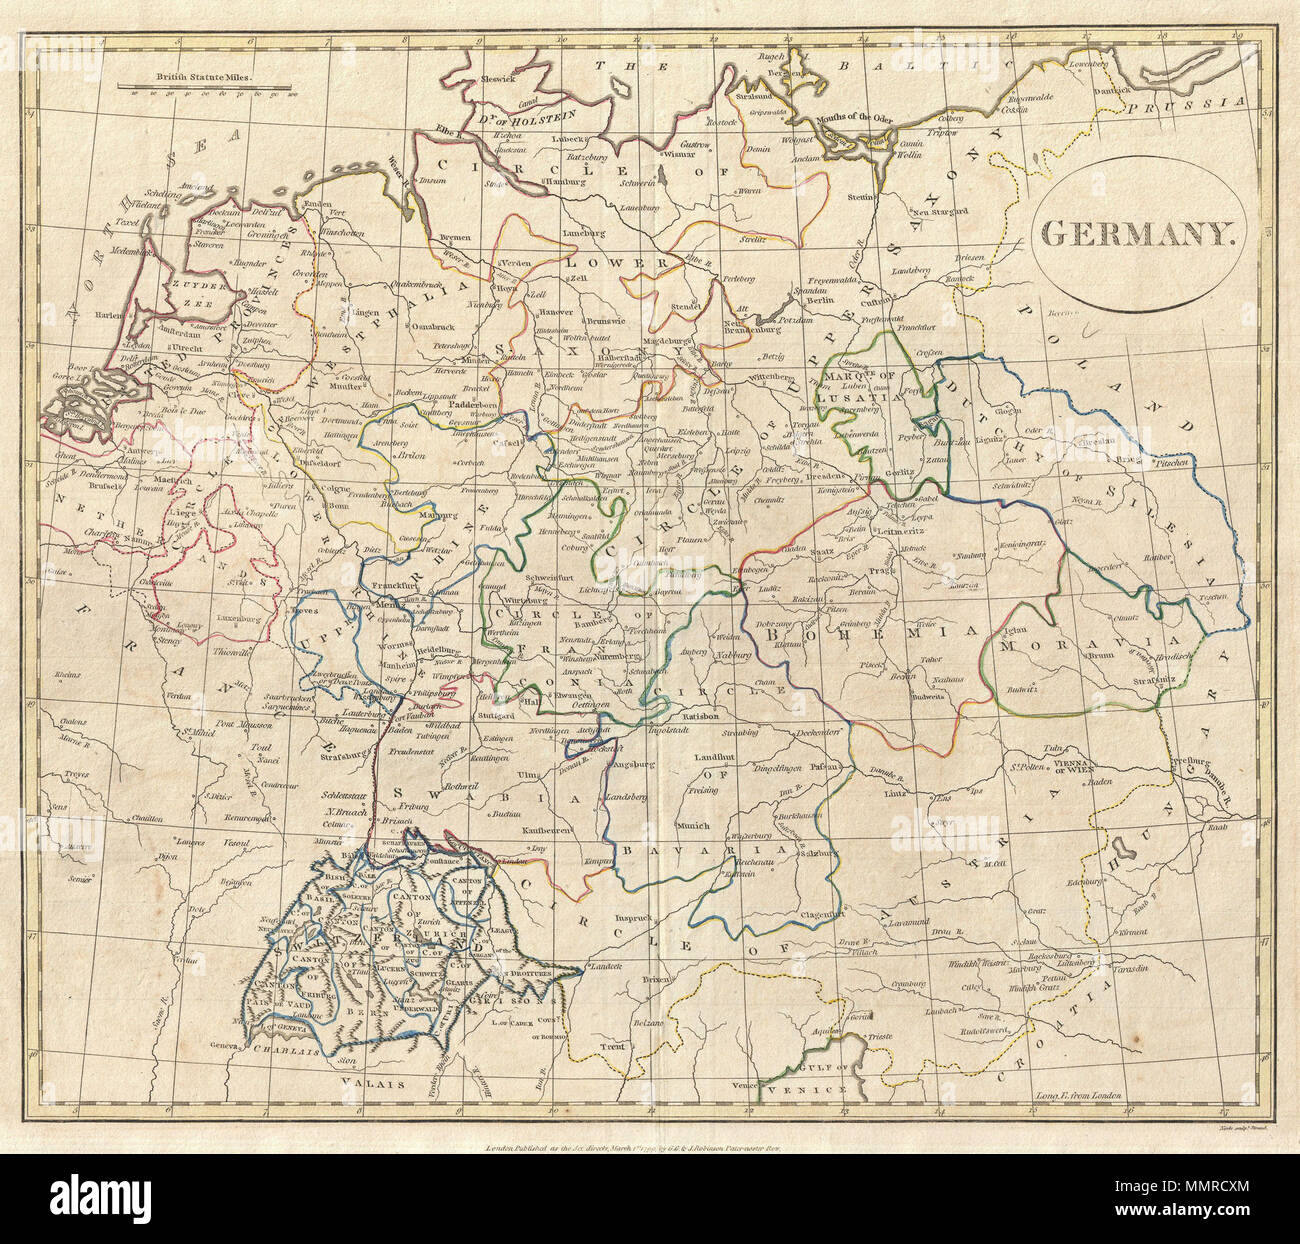 english a fine 1799 map of germany by the english map publisher clement cruttwell includes the regions of westphalia the upper and lower rhine